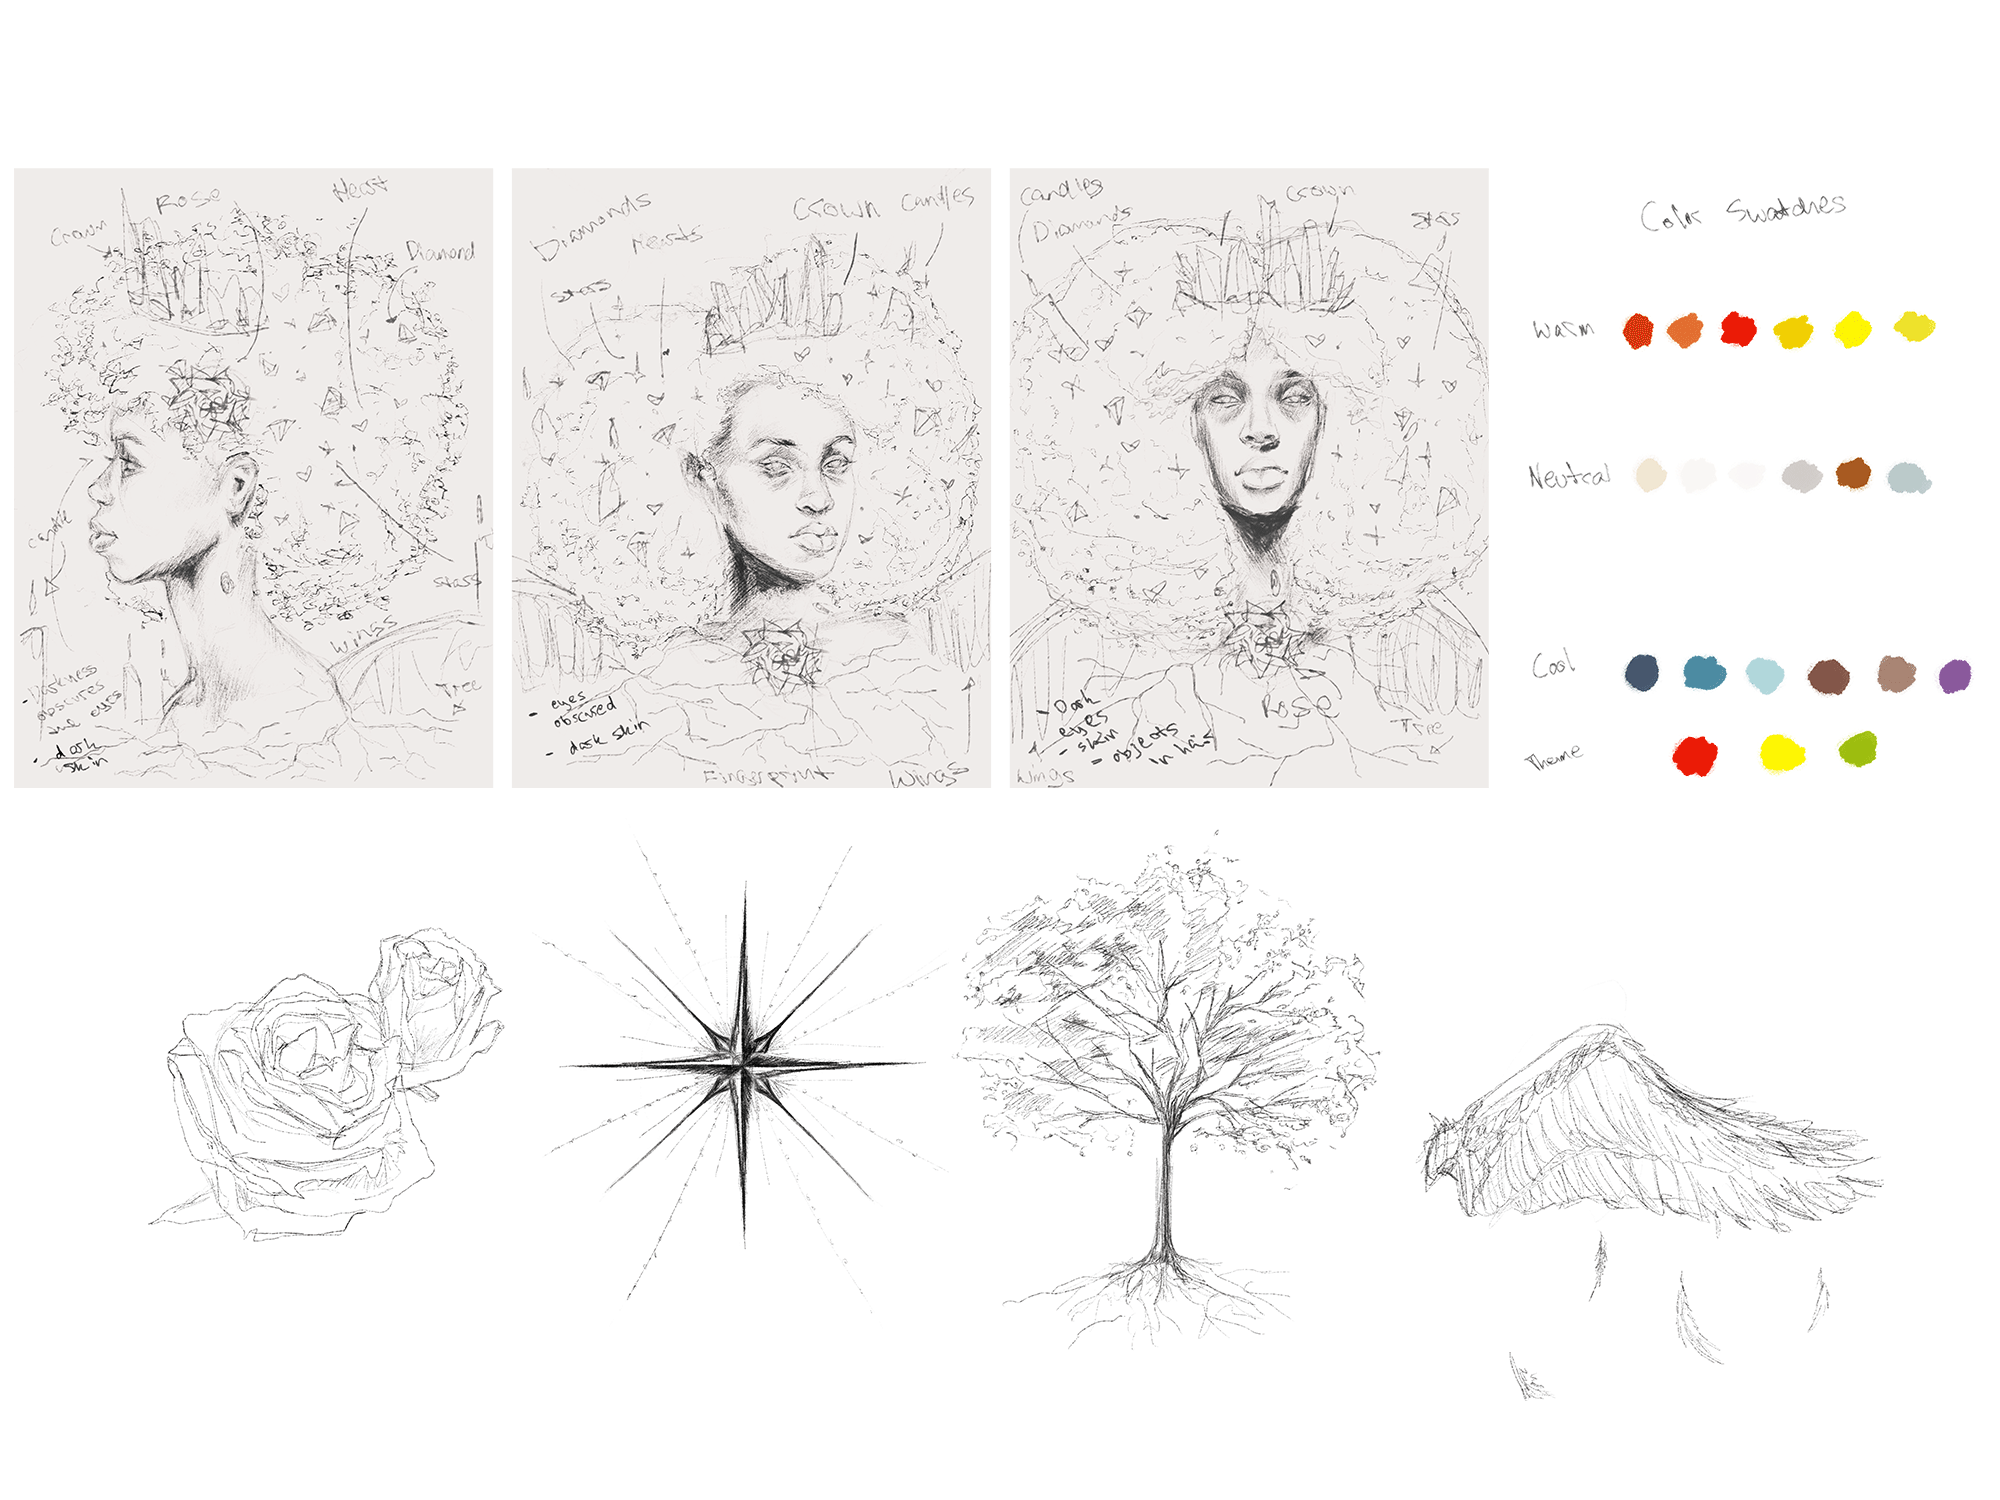 Exploration sketches of the cover and sketches of icons rose, star, tree and wing